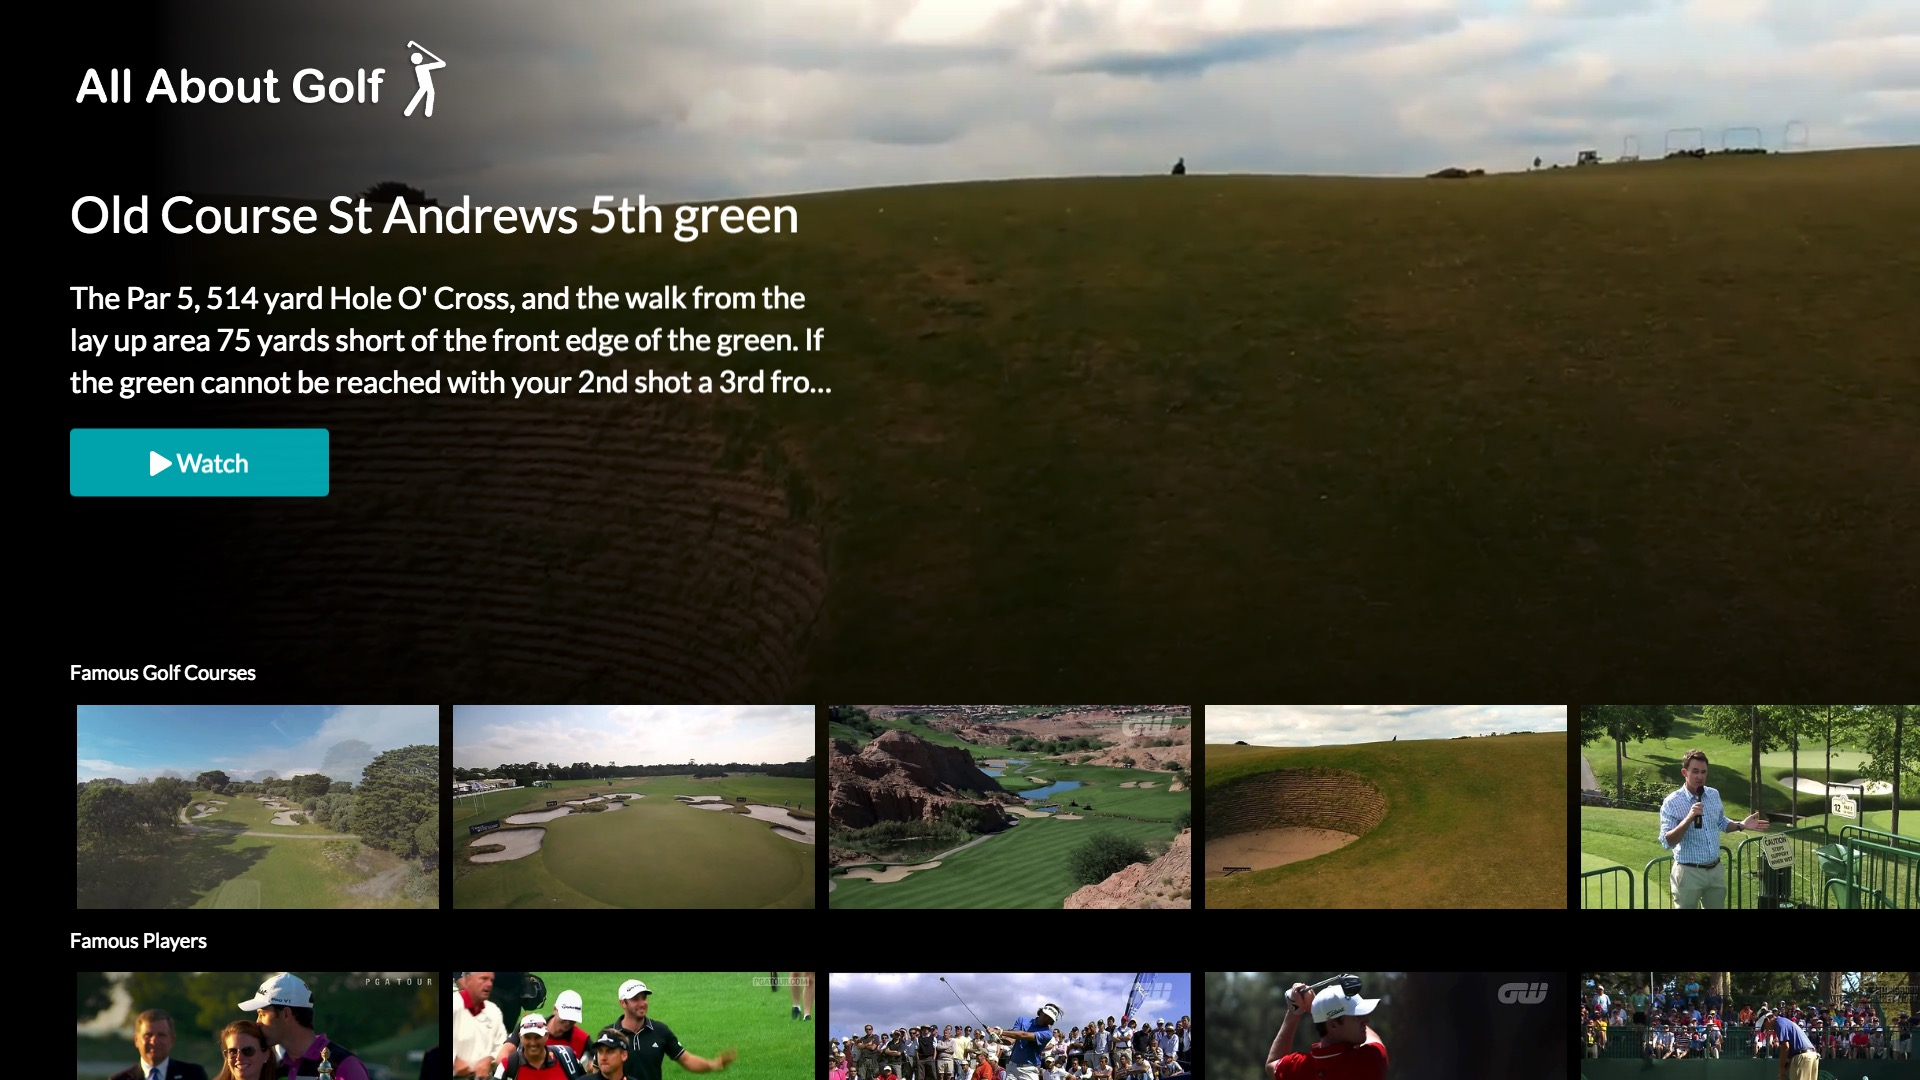 All About Golf Screenshot 001